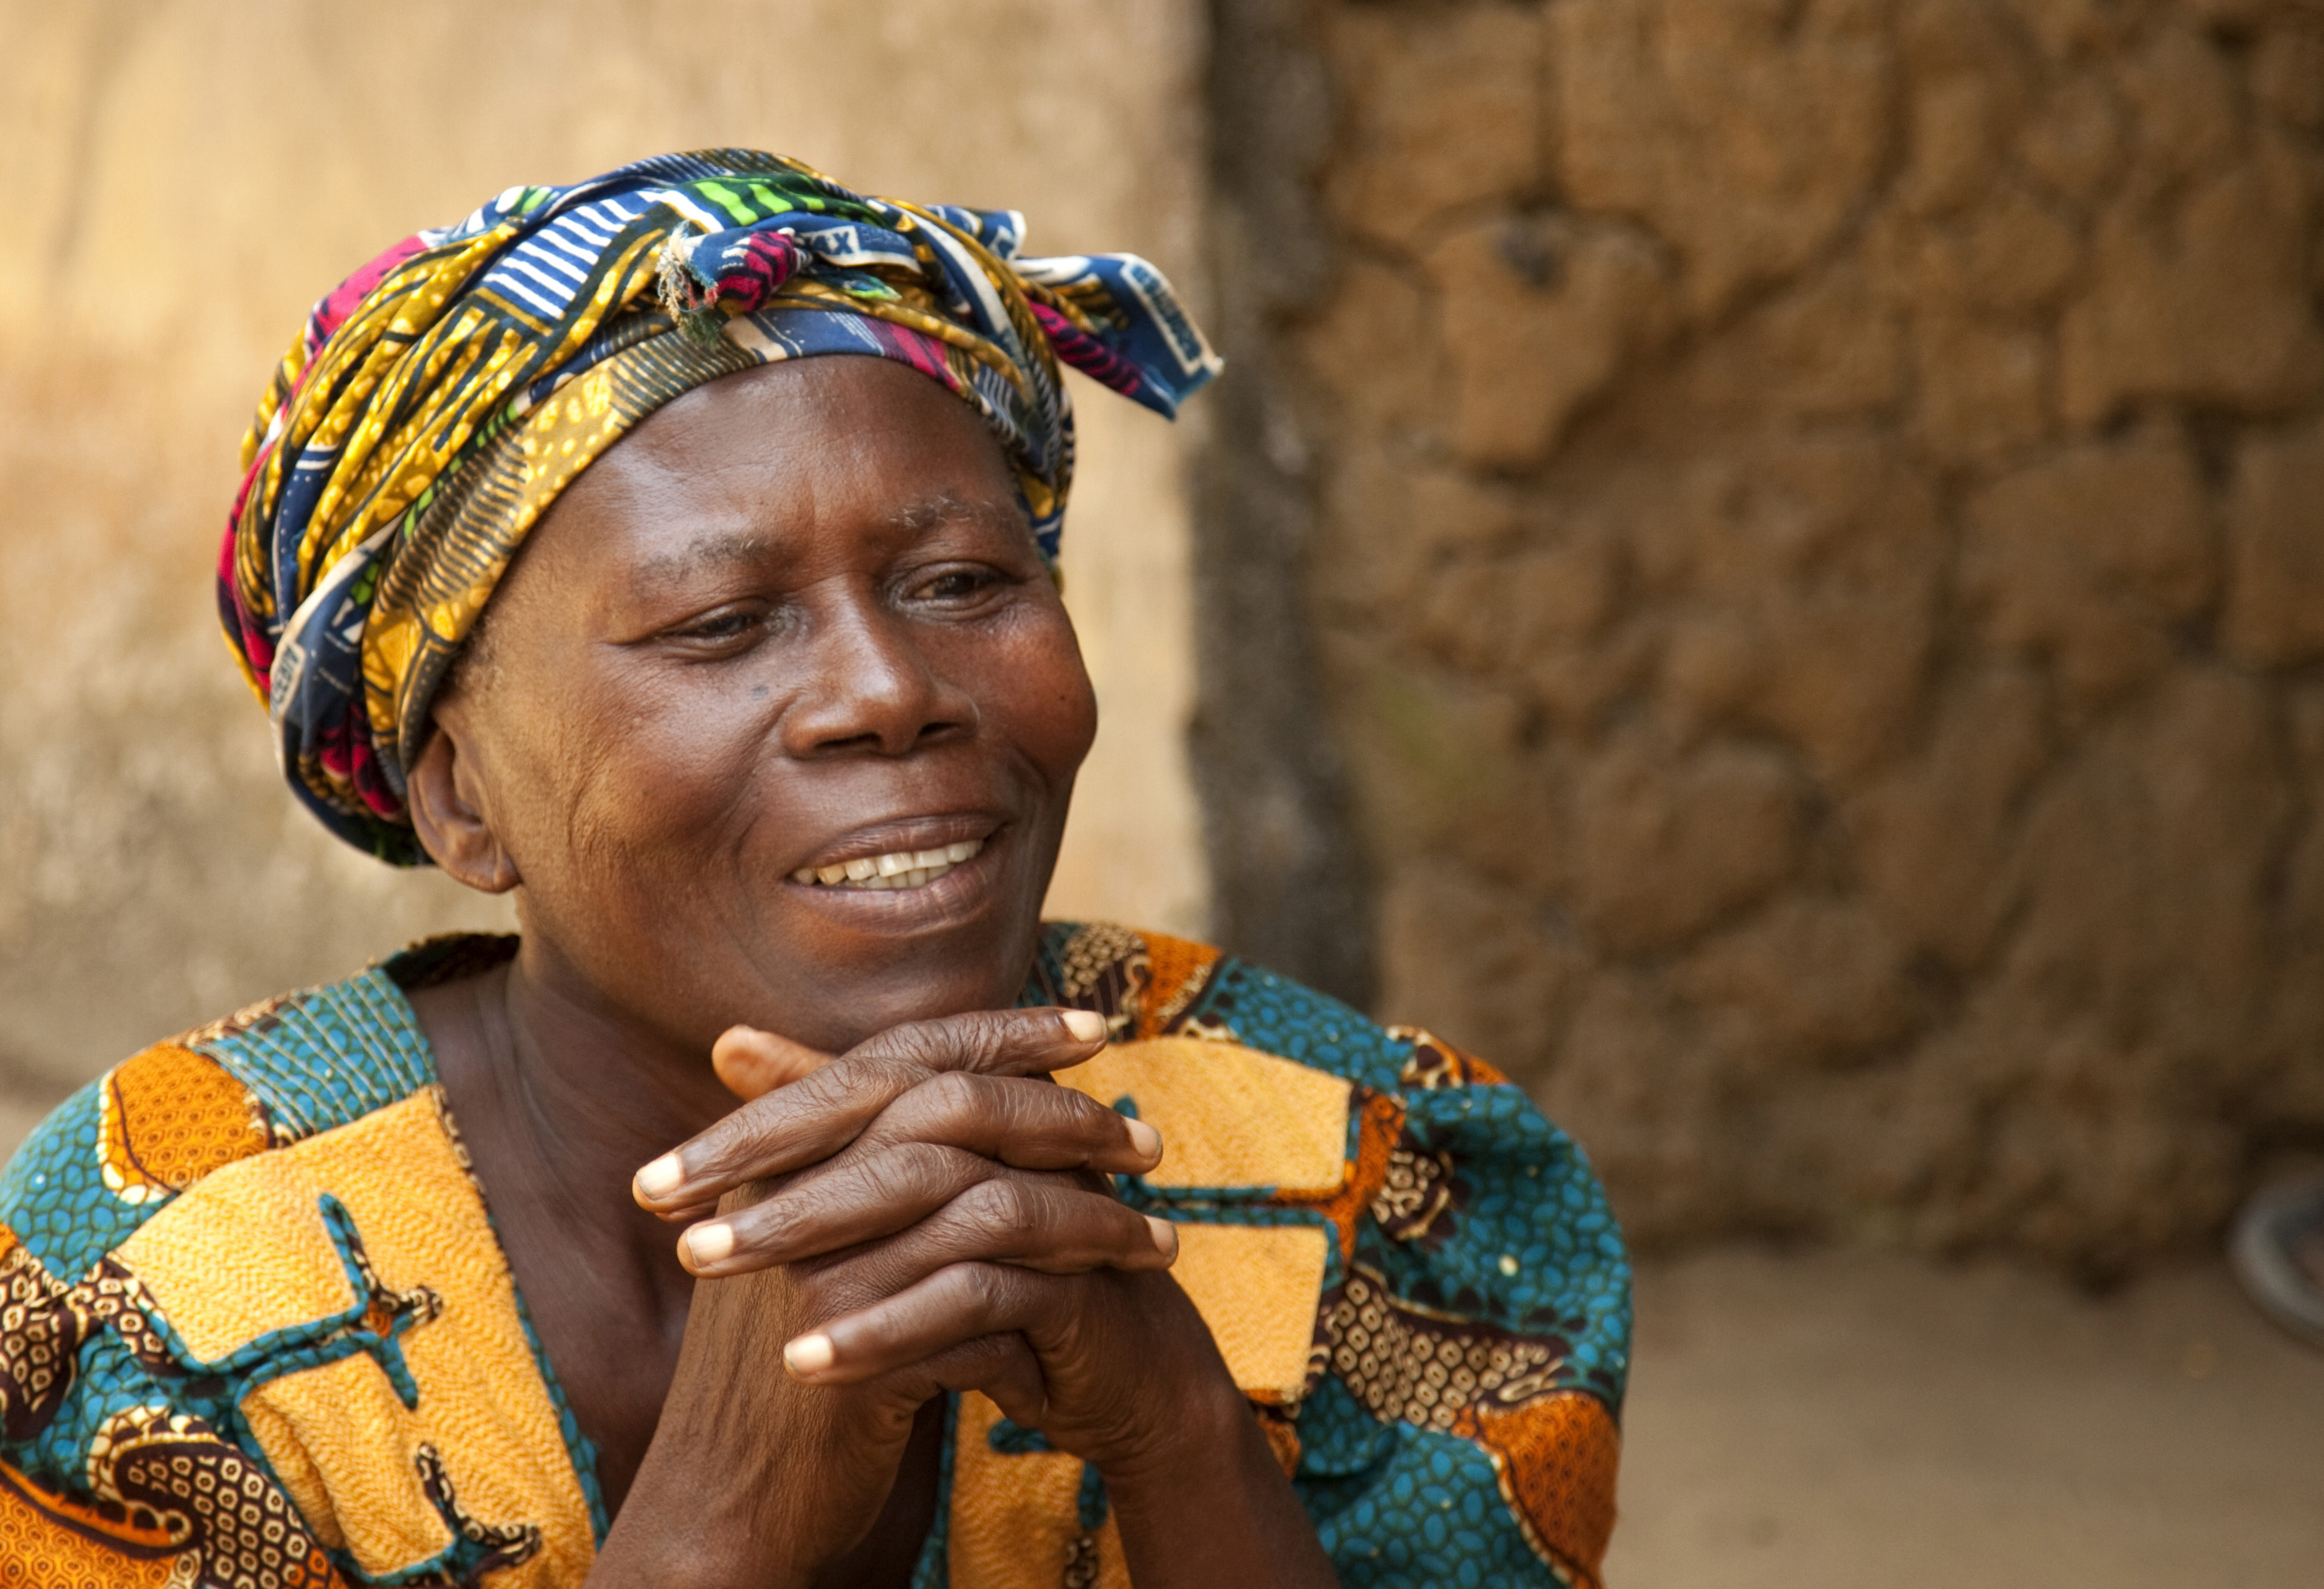 An African woman in a colorful head wrap and shirt clasping her hands together.